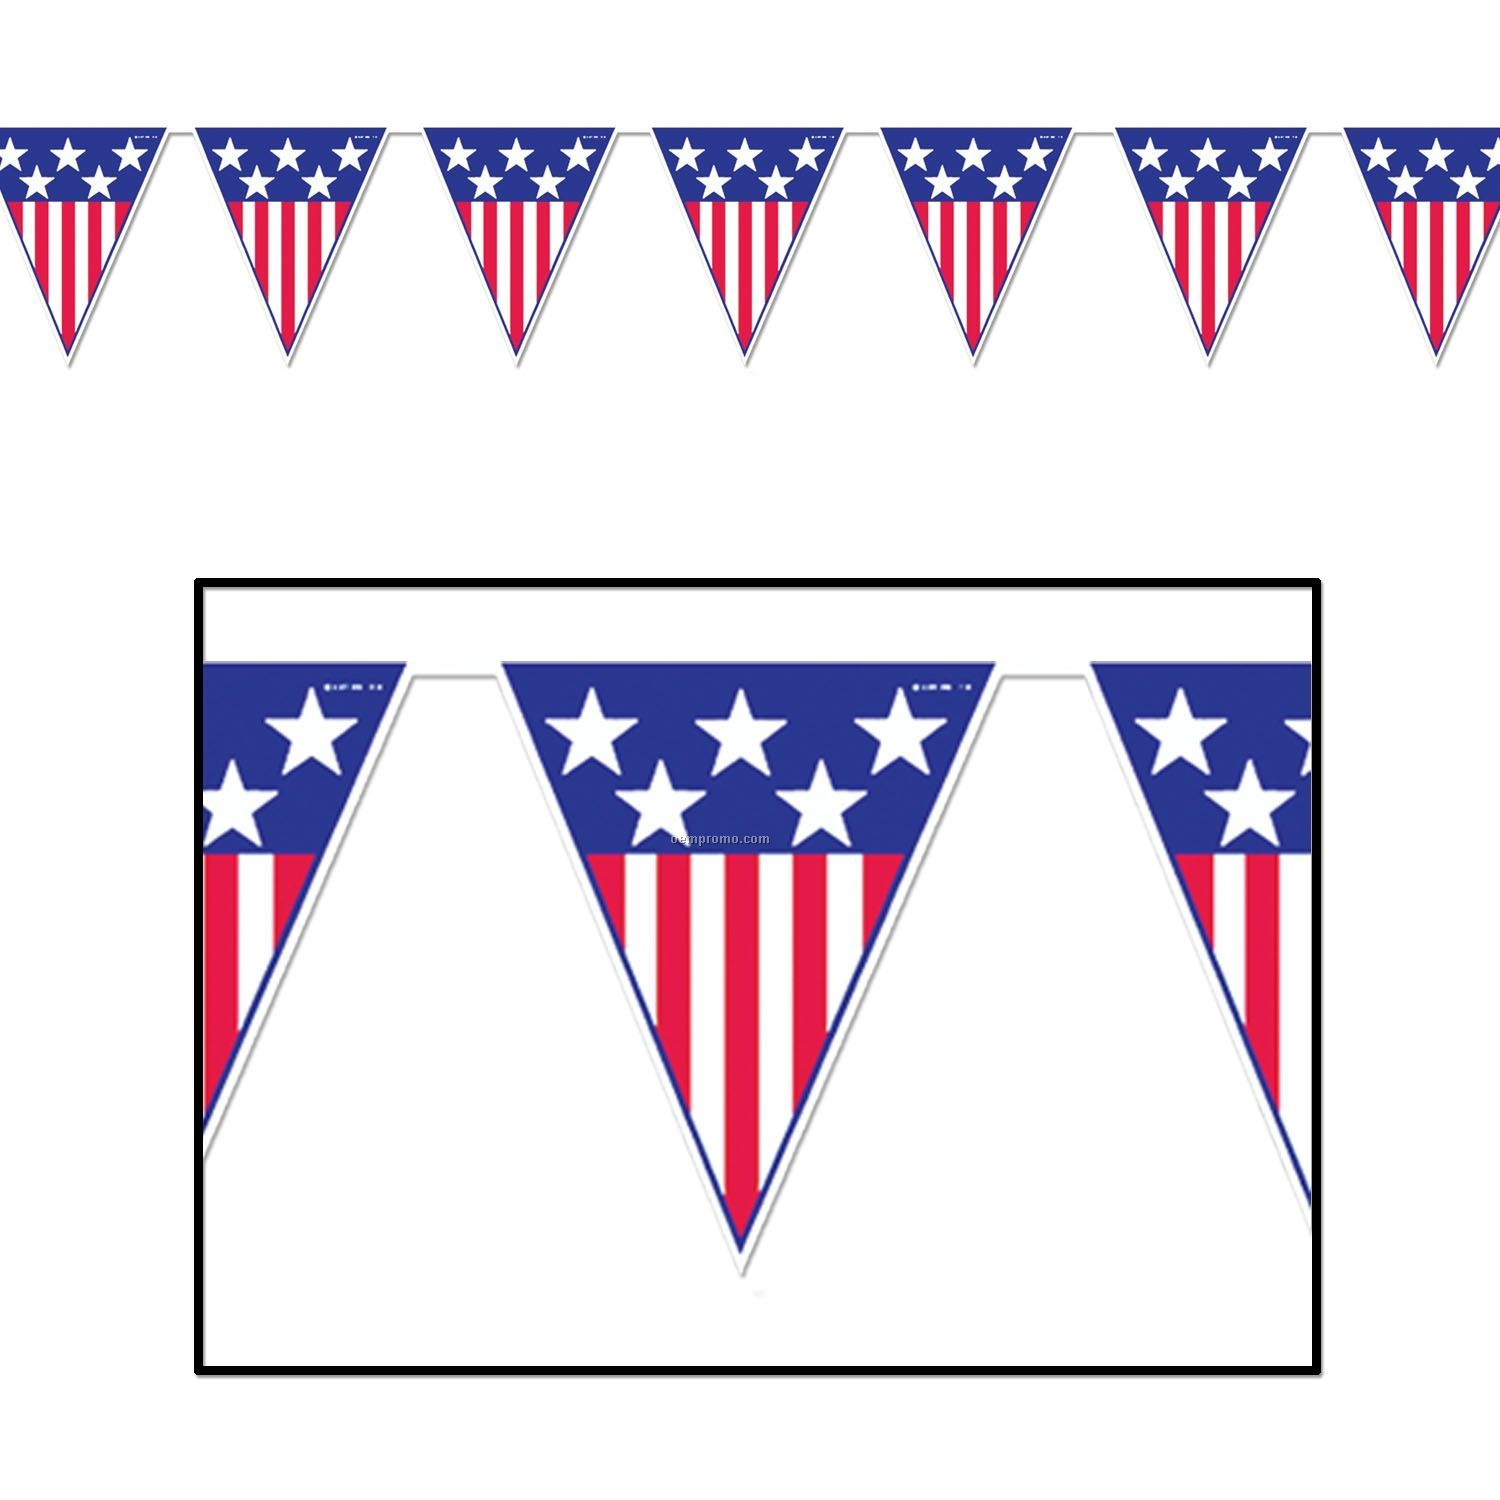 Pennant . Banners clipart american flag